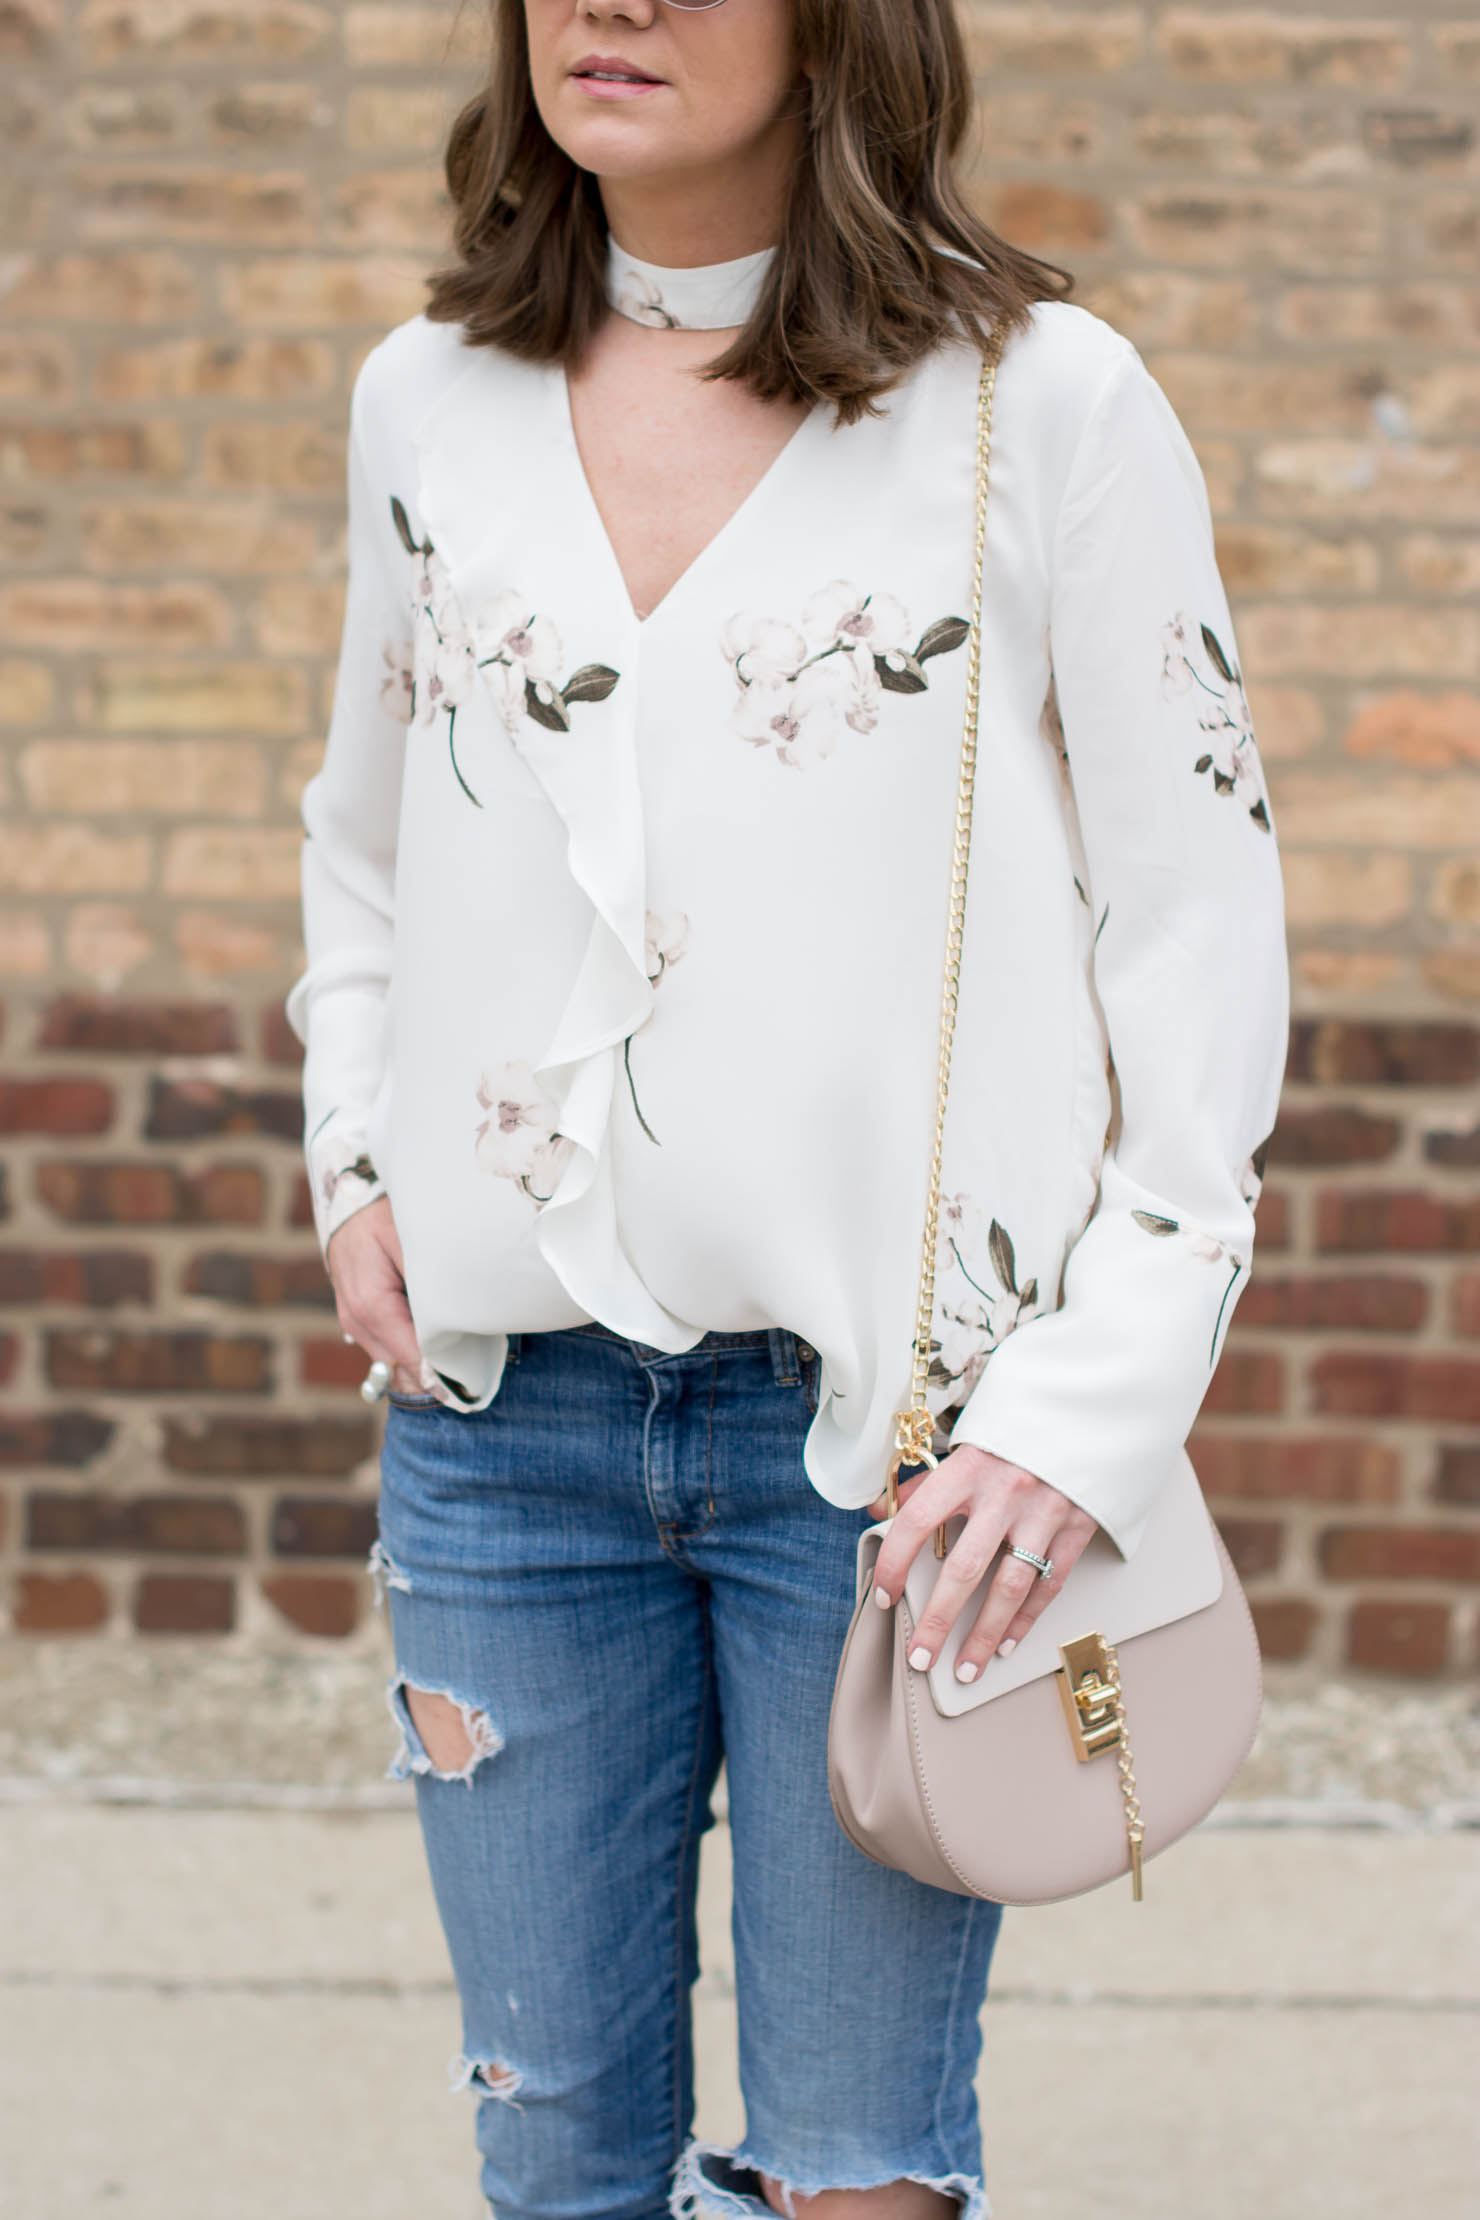 how to wear a floral print as a basics girl, maven-dynamite-white-choker-color-floral-blouse-spring-outfit-how-to-wear-florals-chloe-drew-dupe